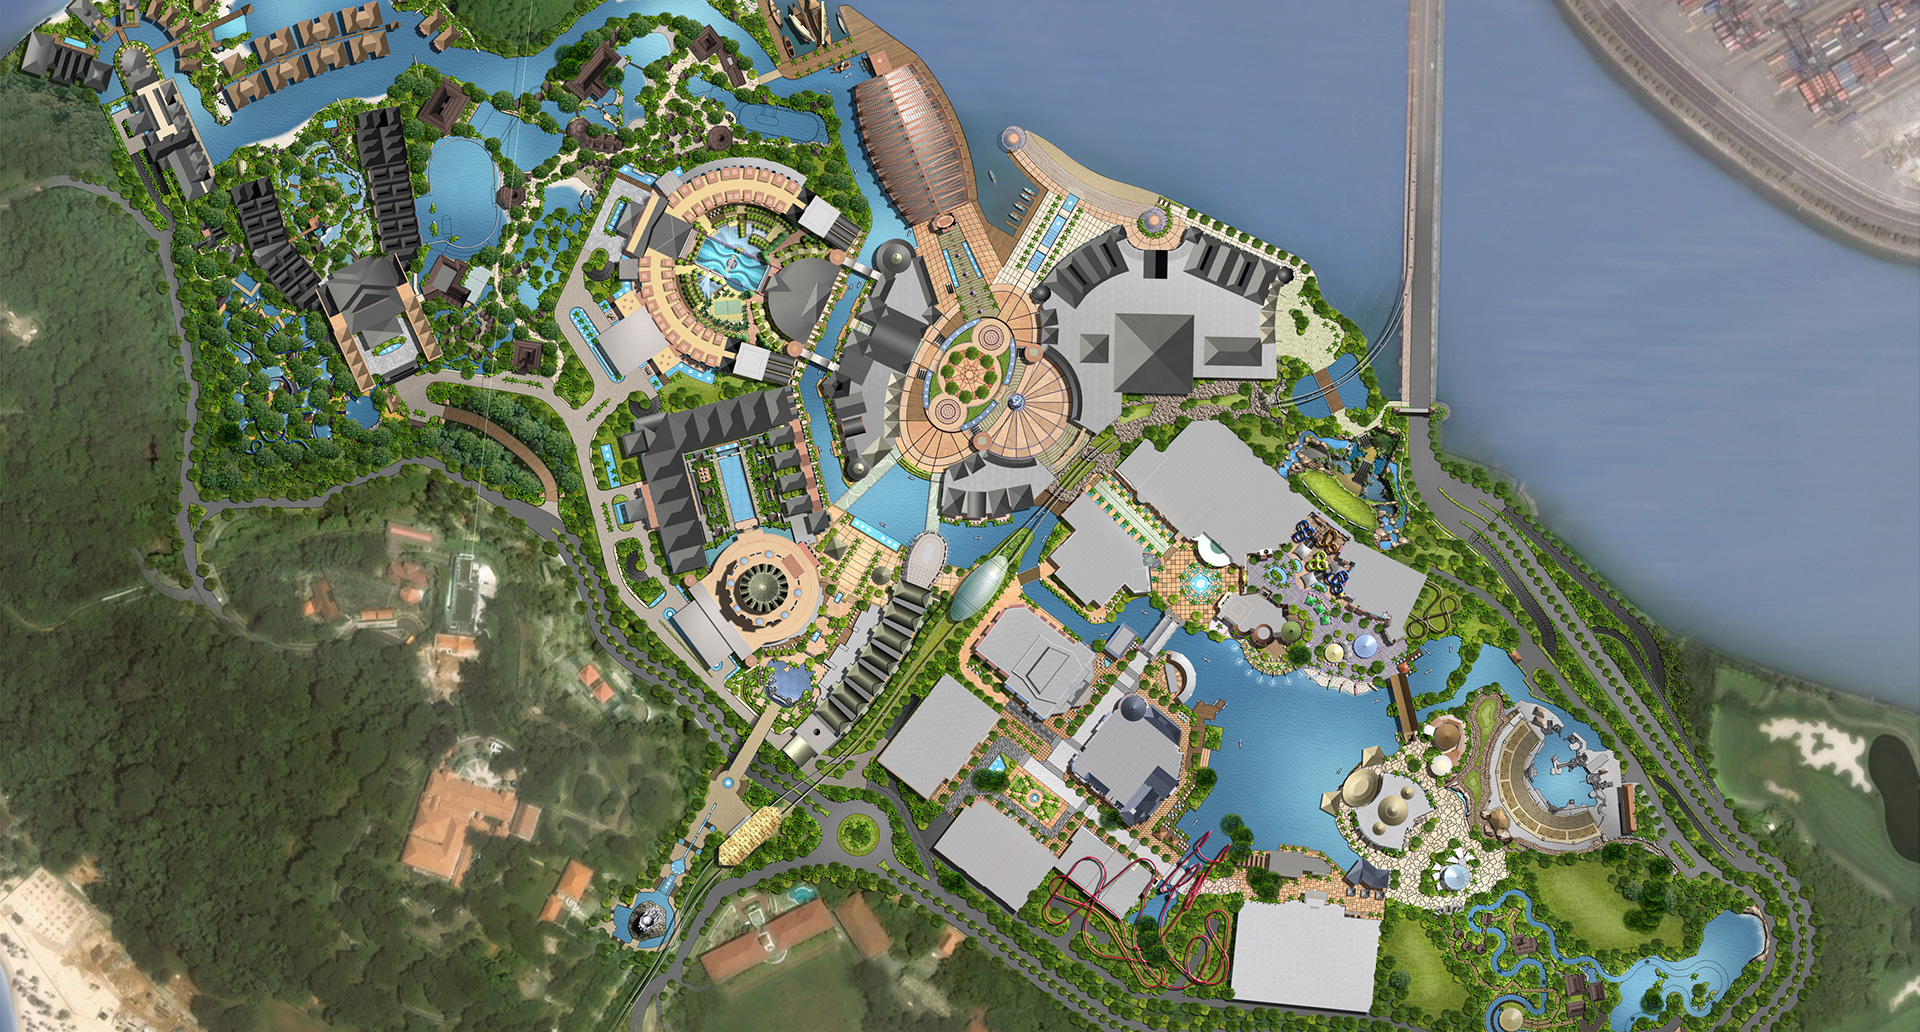 Resorts World at Sentosa Forrec